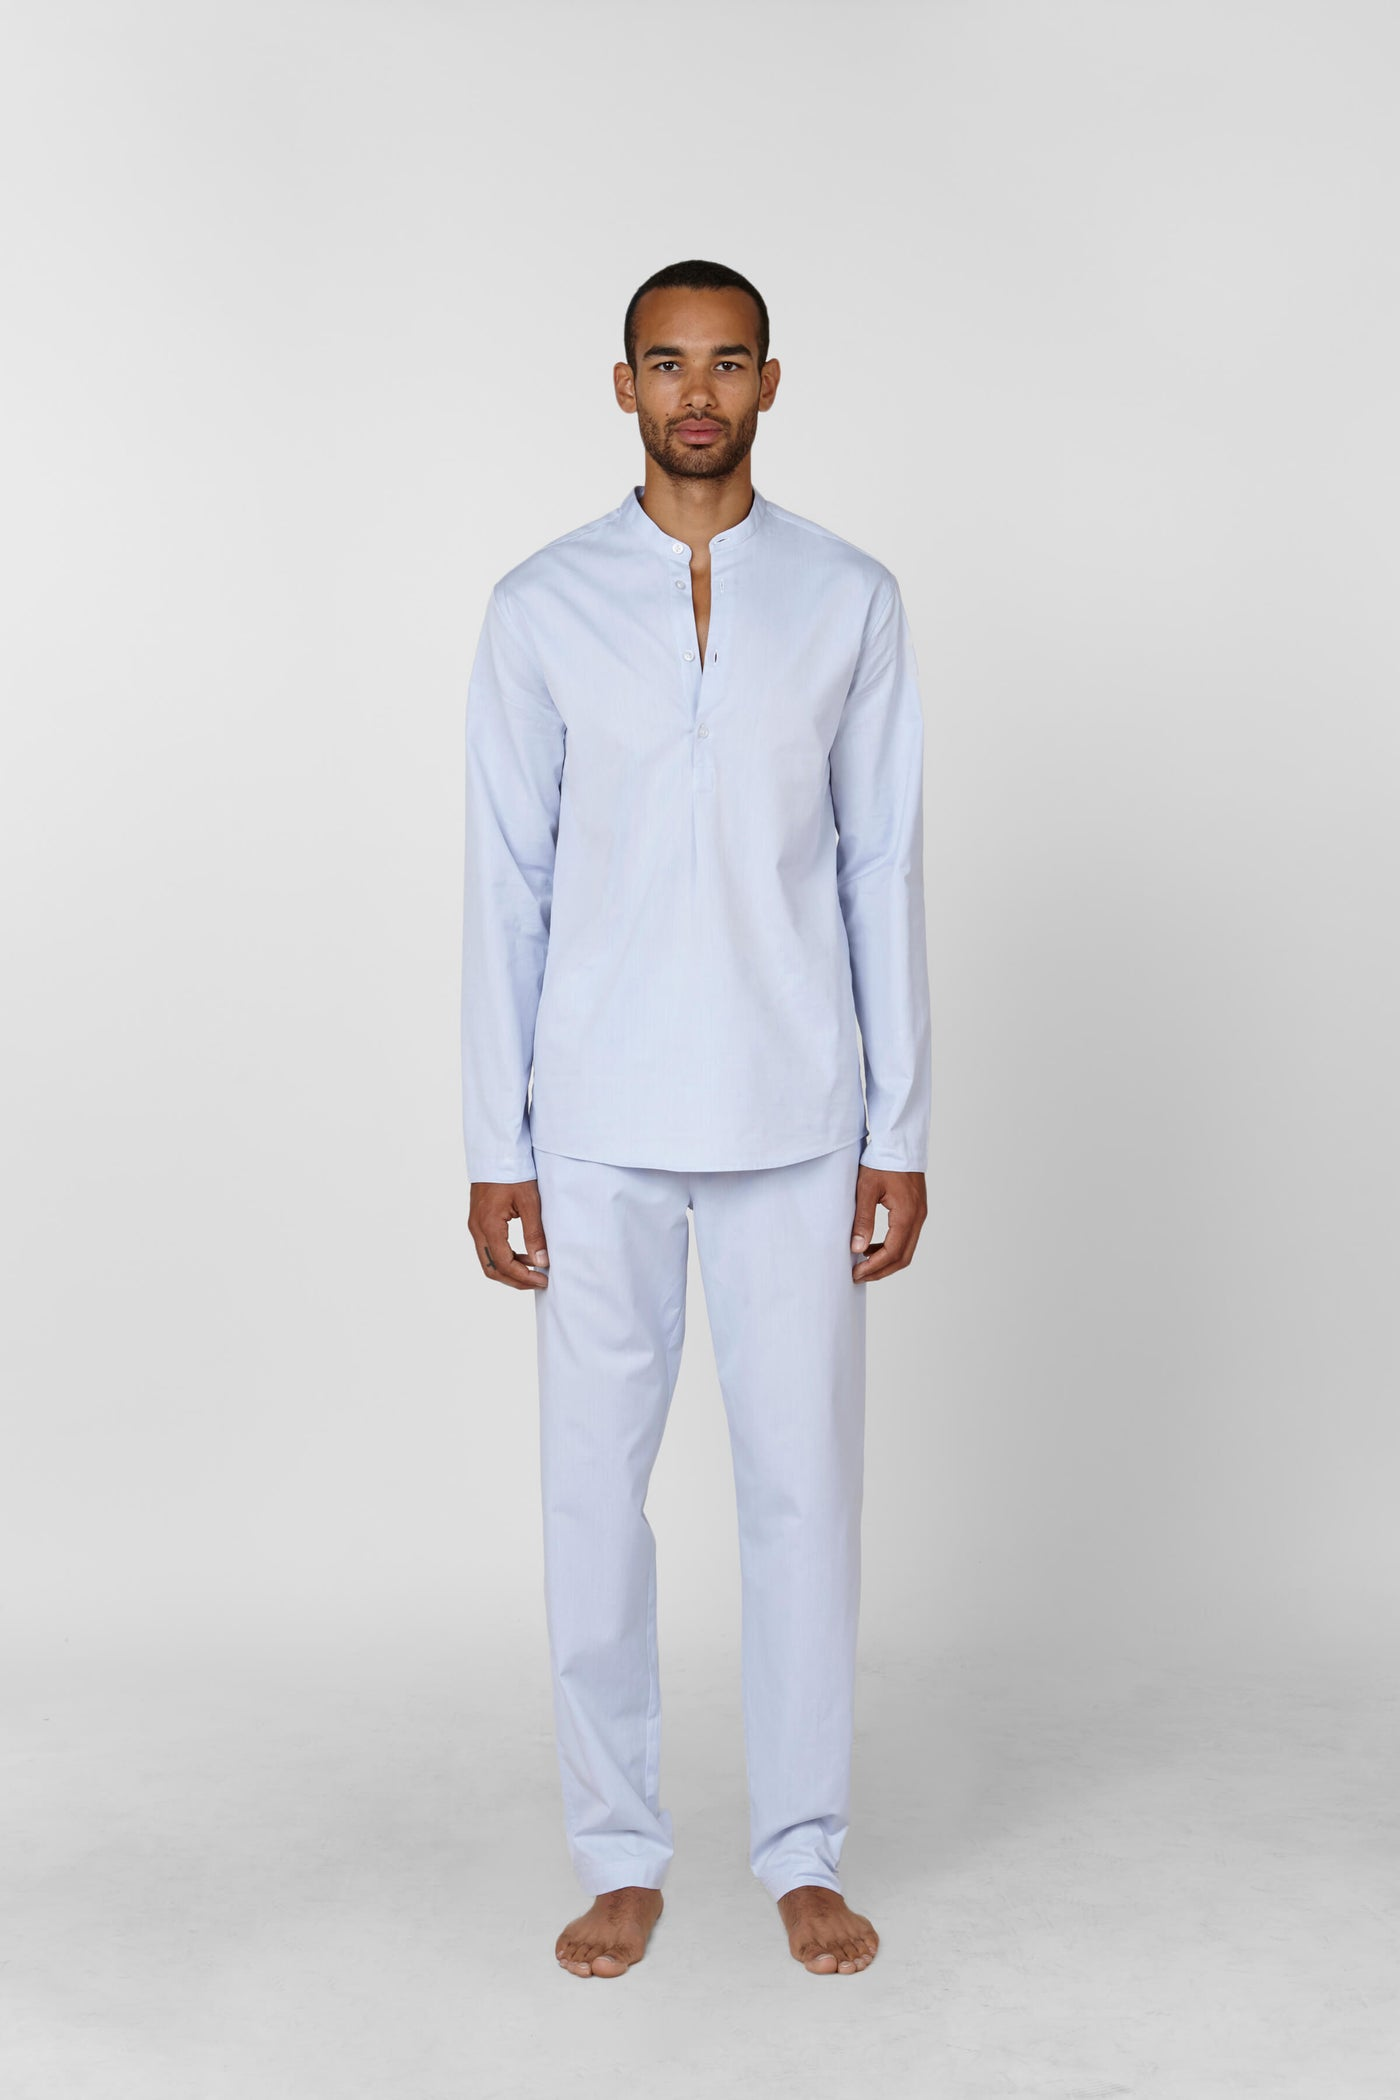 Product Shot of the The Pajama Set in Light Blue